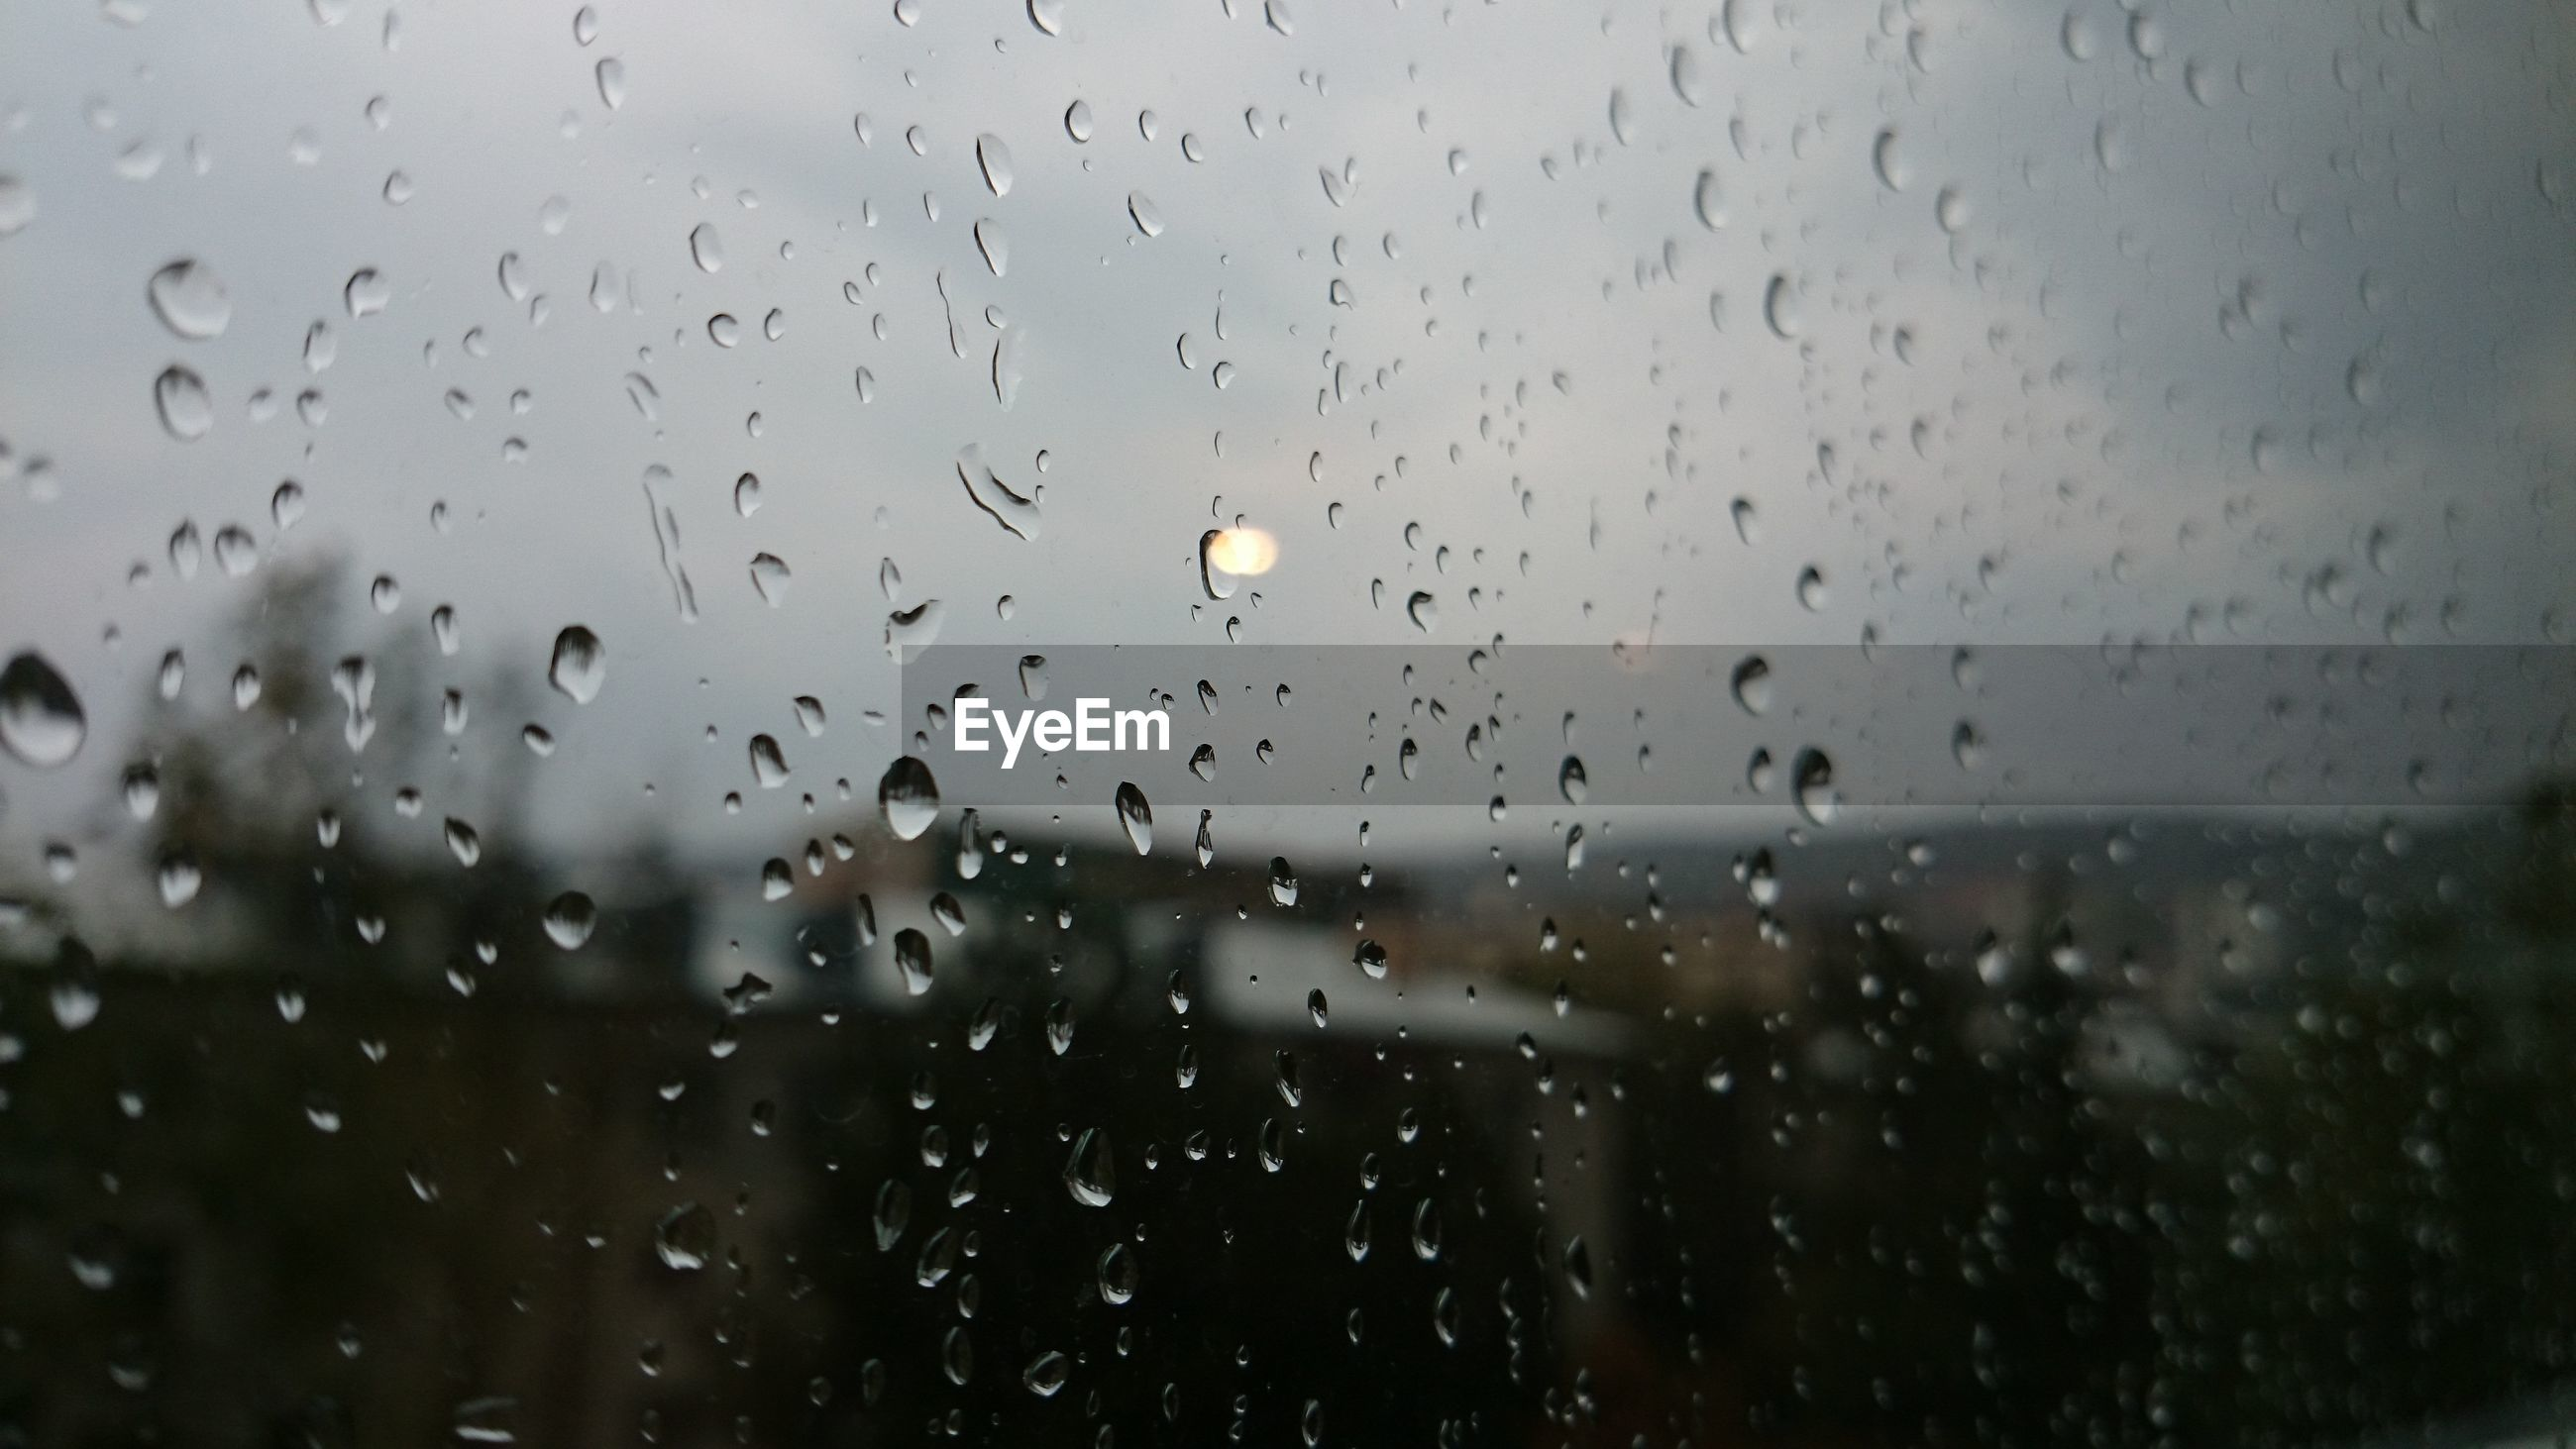 drop, wet, window, rain, indoors, water, transparent, raindrop, glass - material, weather, season, full frame, focus on foreground, backgrounds, glass, close-up, sky, monsoon, no people, droplet